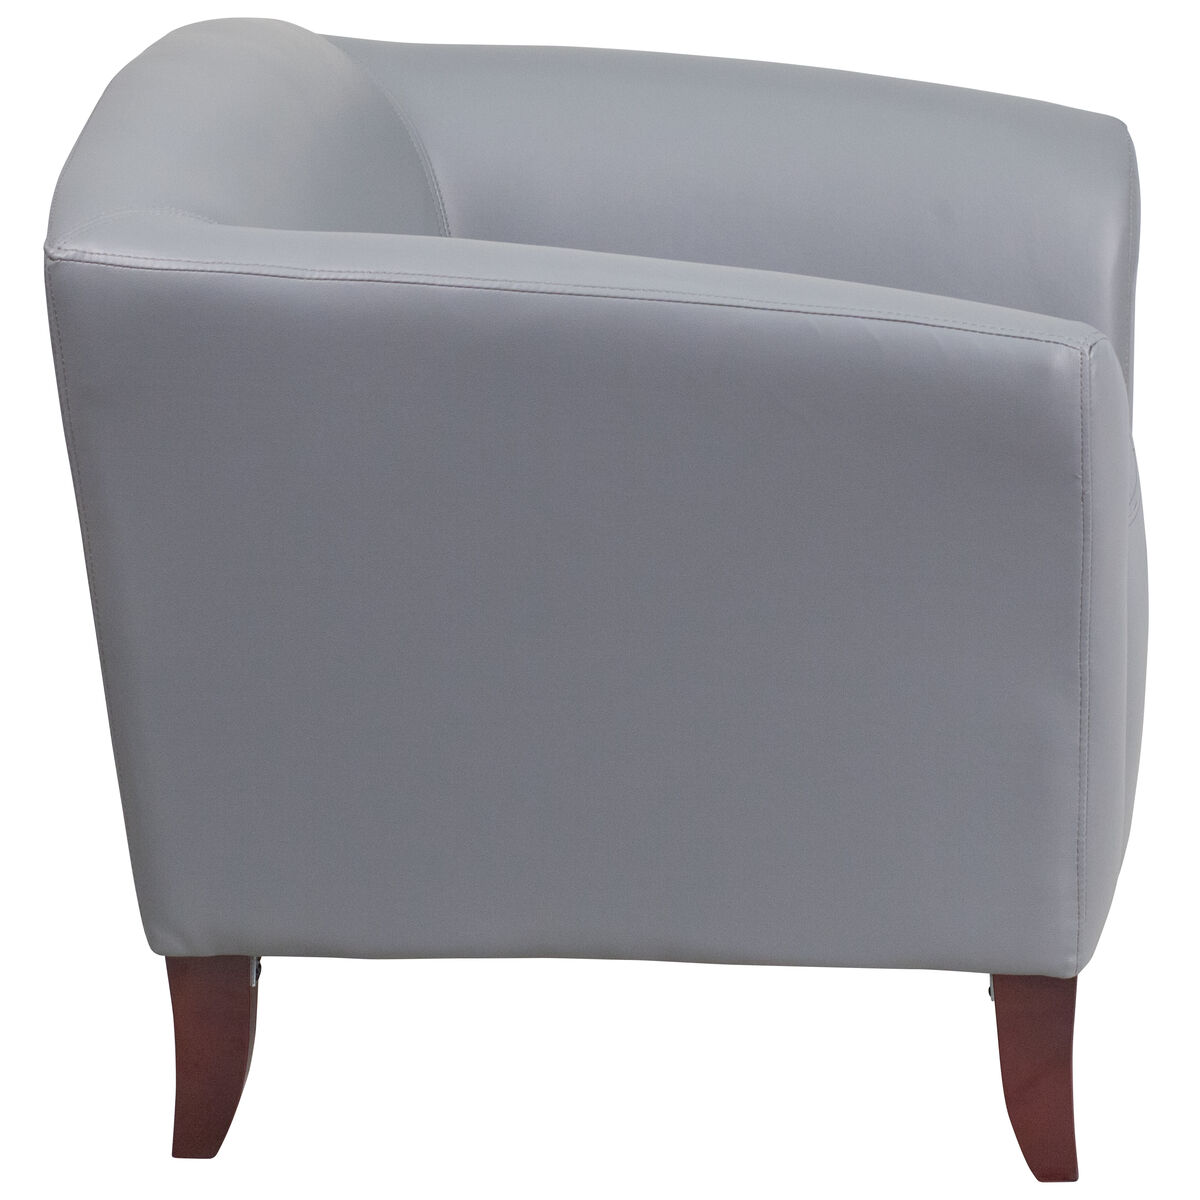 Gray Leather Chair 111 1 Gy Gg Churchchairs4less Com